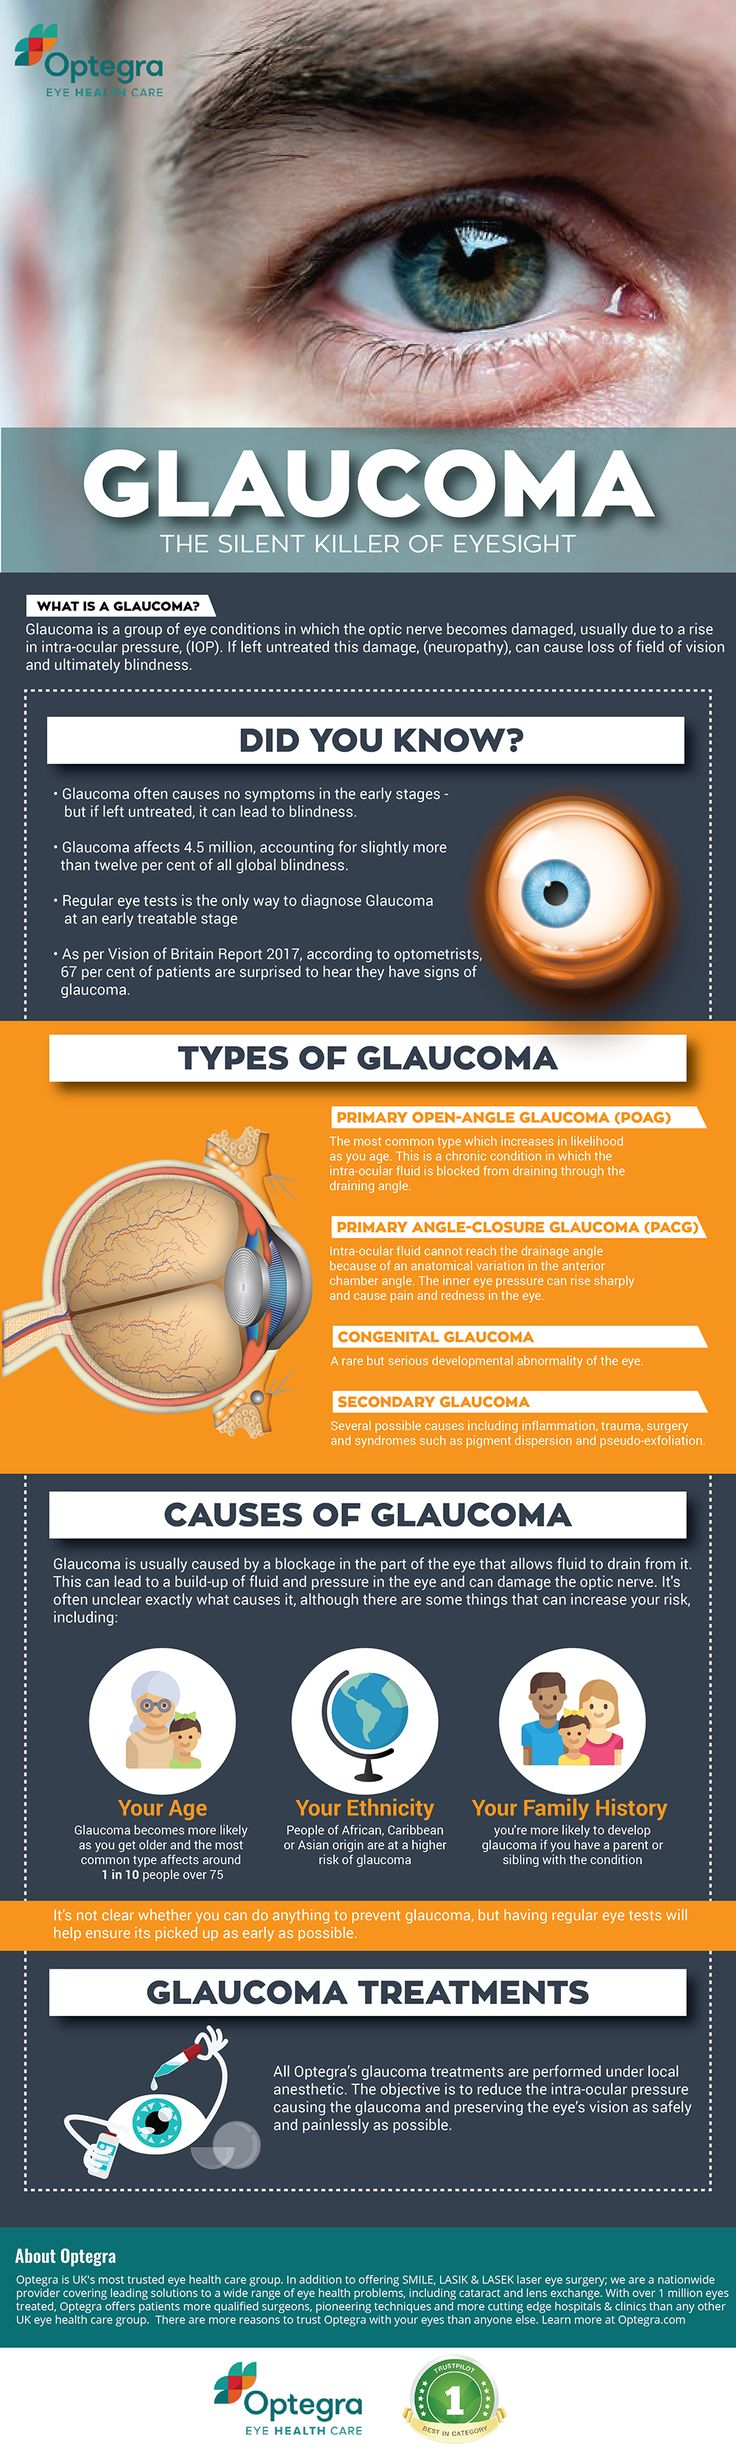 #Glaucoma - The silent killer of Eyesight. Our new #infographic explains everything you need to know!